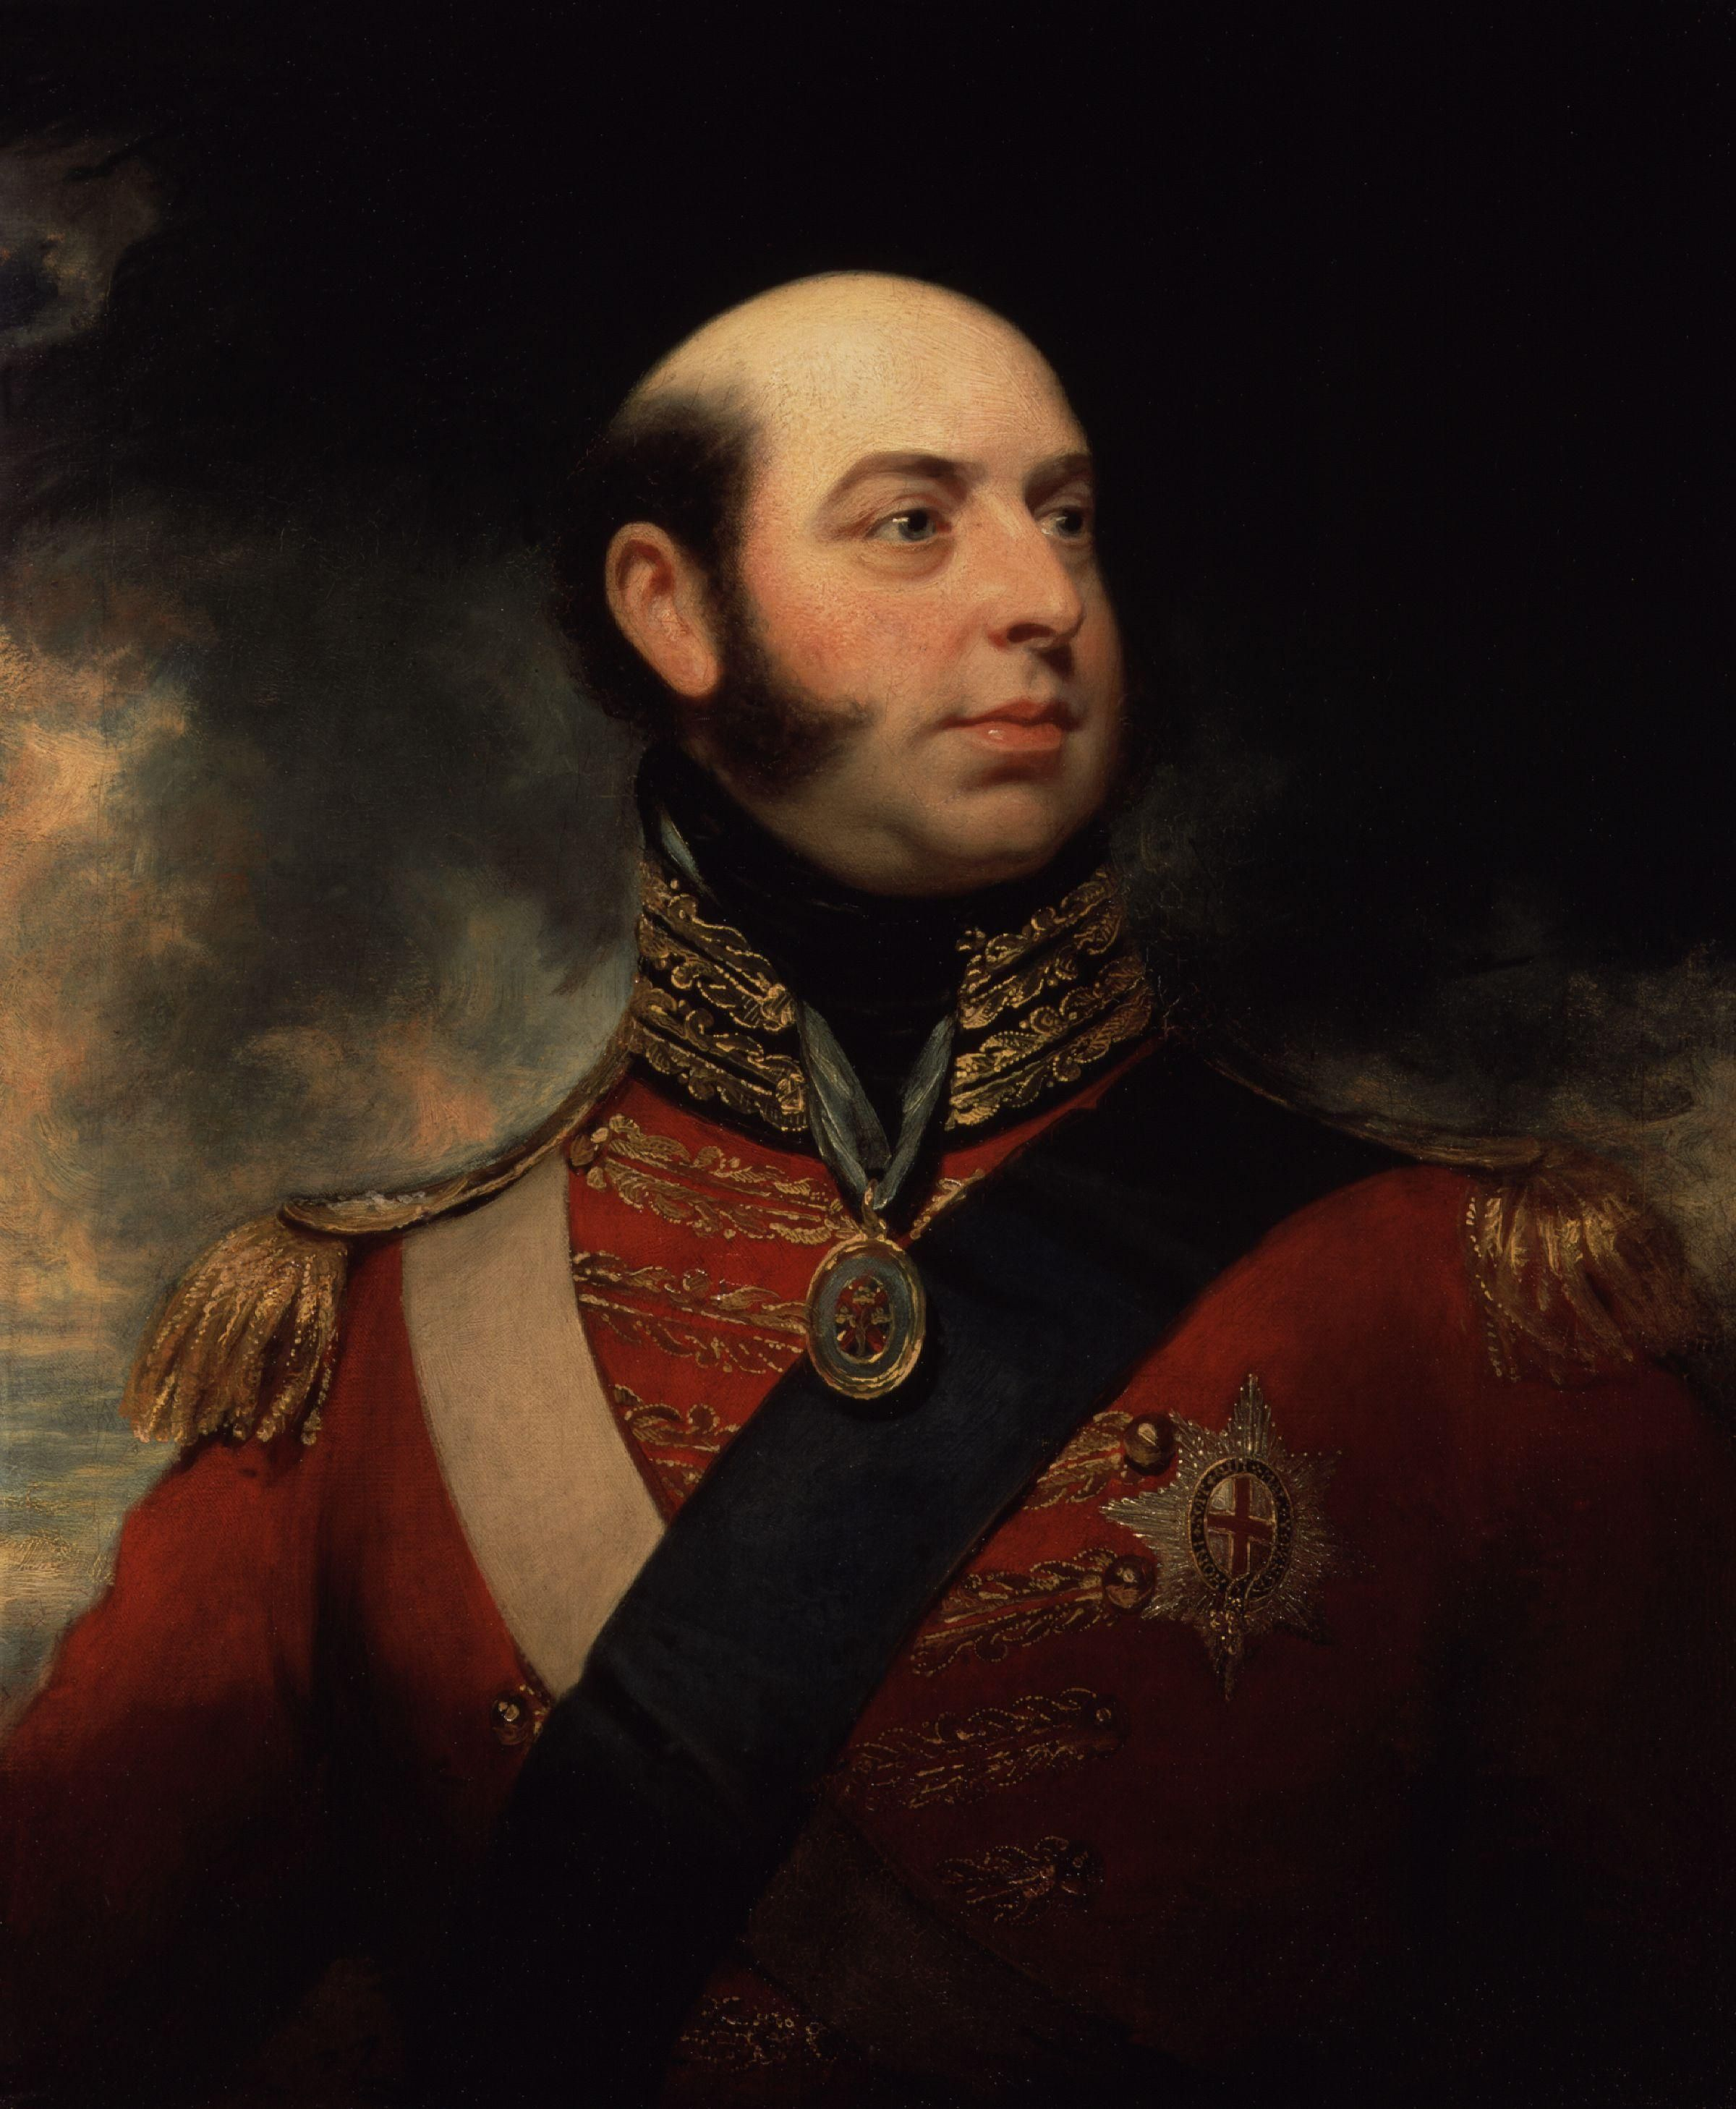 Edward, Prince of Great Britain, Duke of Kent and Strathearn; by Sir William Beechey, c. 1818. He was the son of King George III of Great Britain. He was also the father to Queen Victoria of Great Britain.